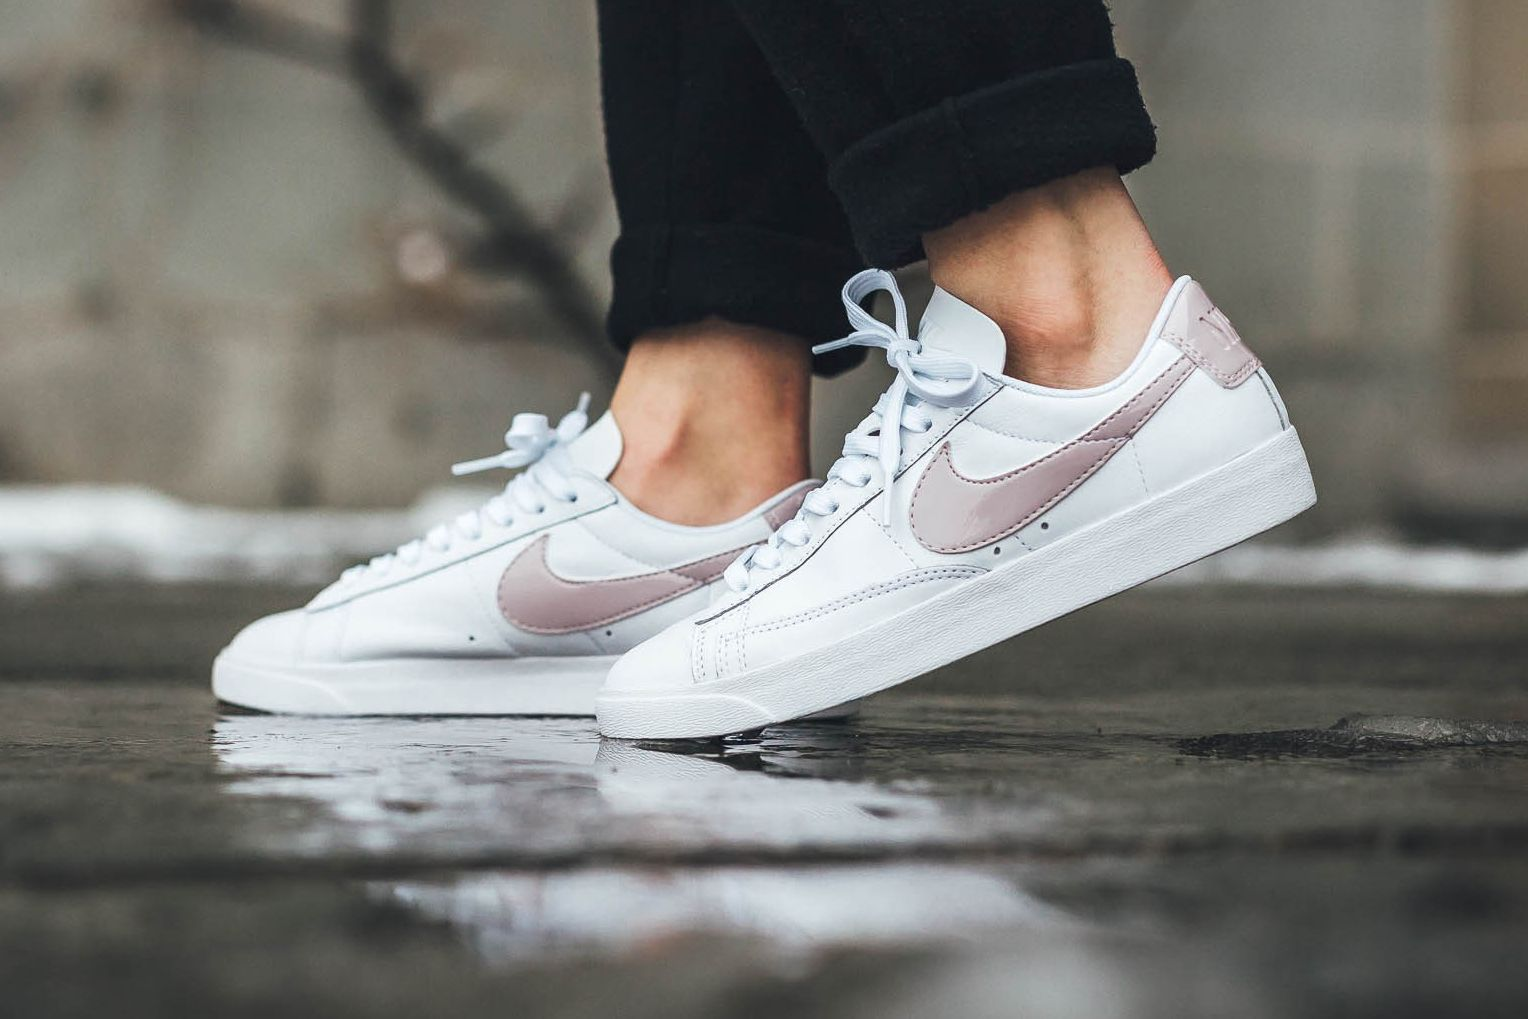 0bdbaf7dee81 Nike s Blazer Low Swooshes by in Barely There Pink